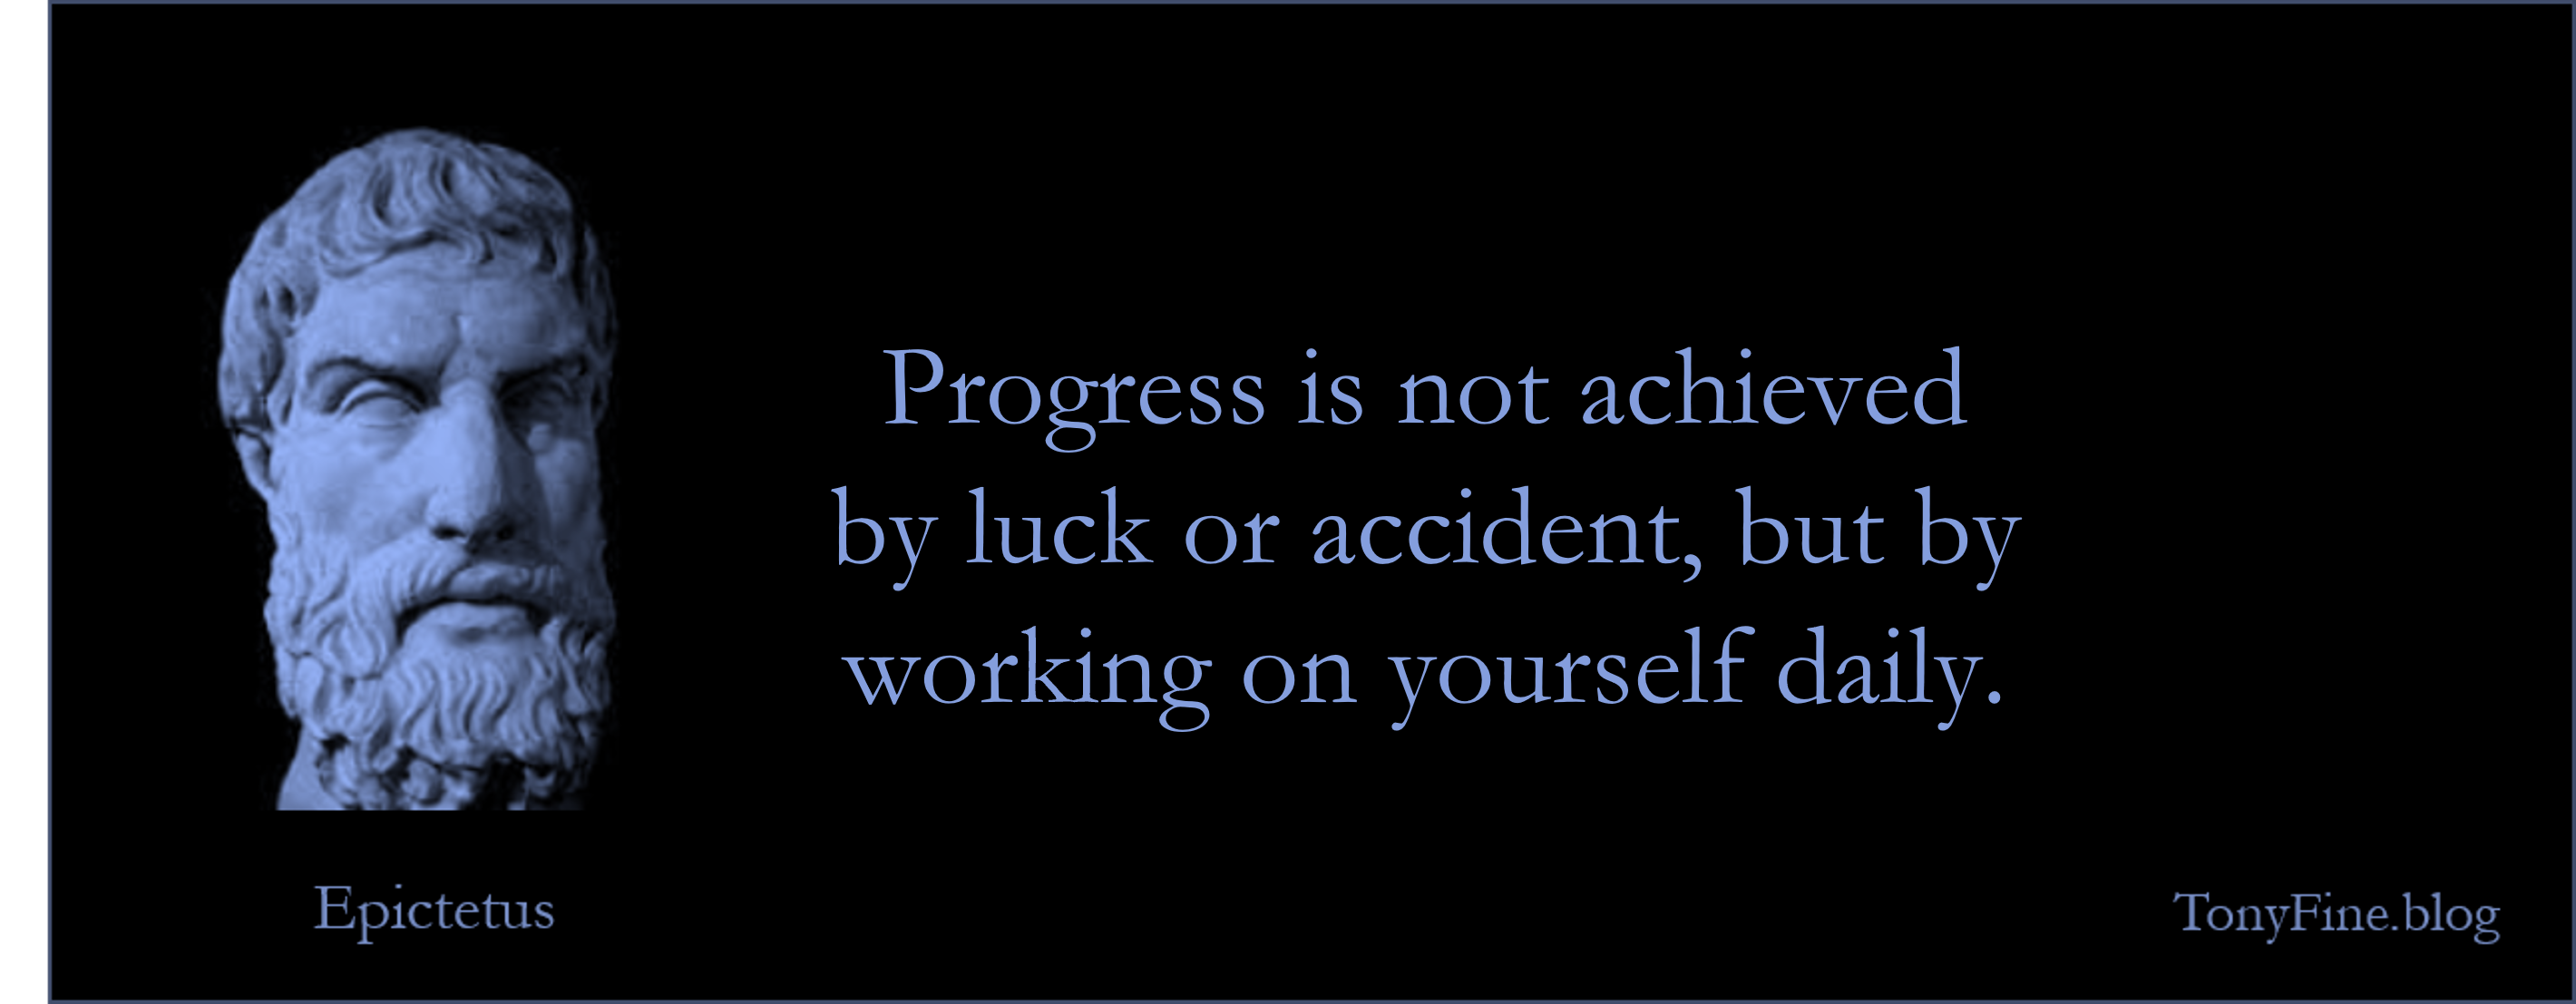 Progress is not achieved by luck or accident, but by working on yourself daily. -Epictetus